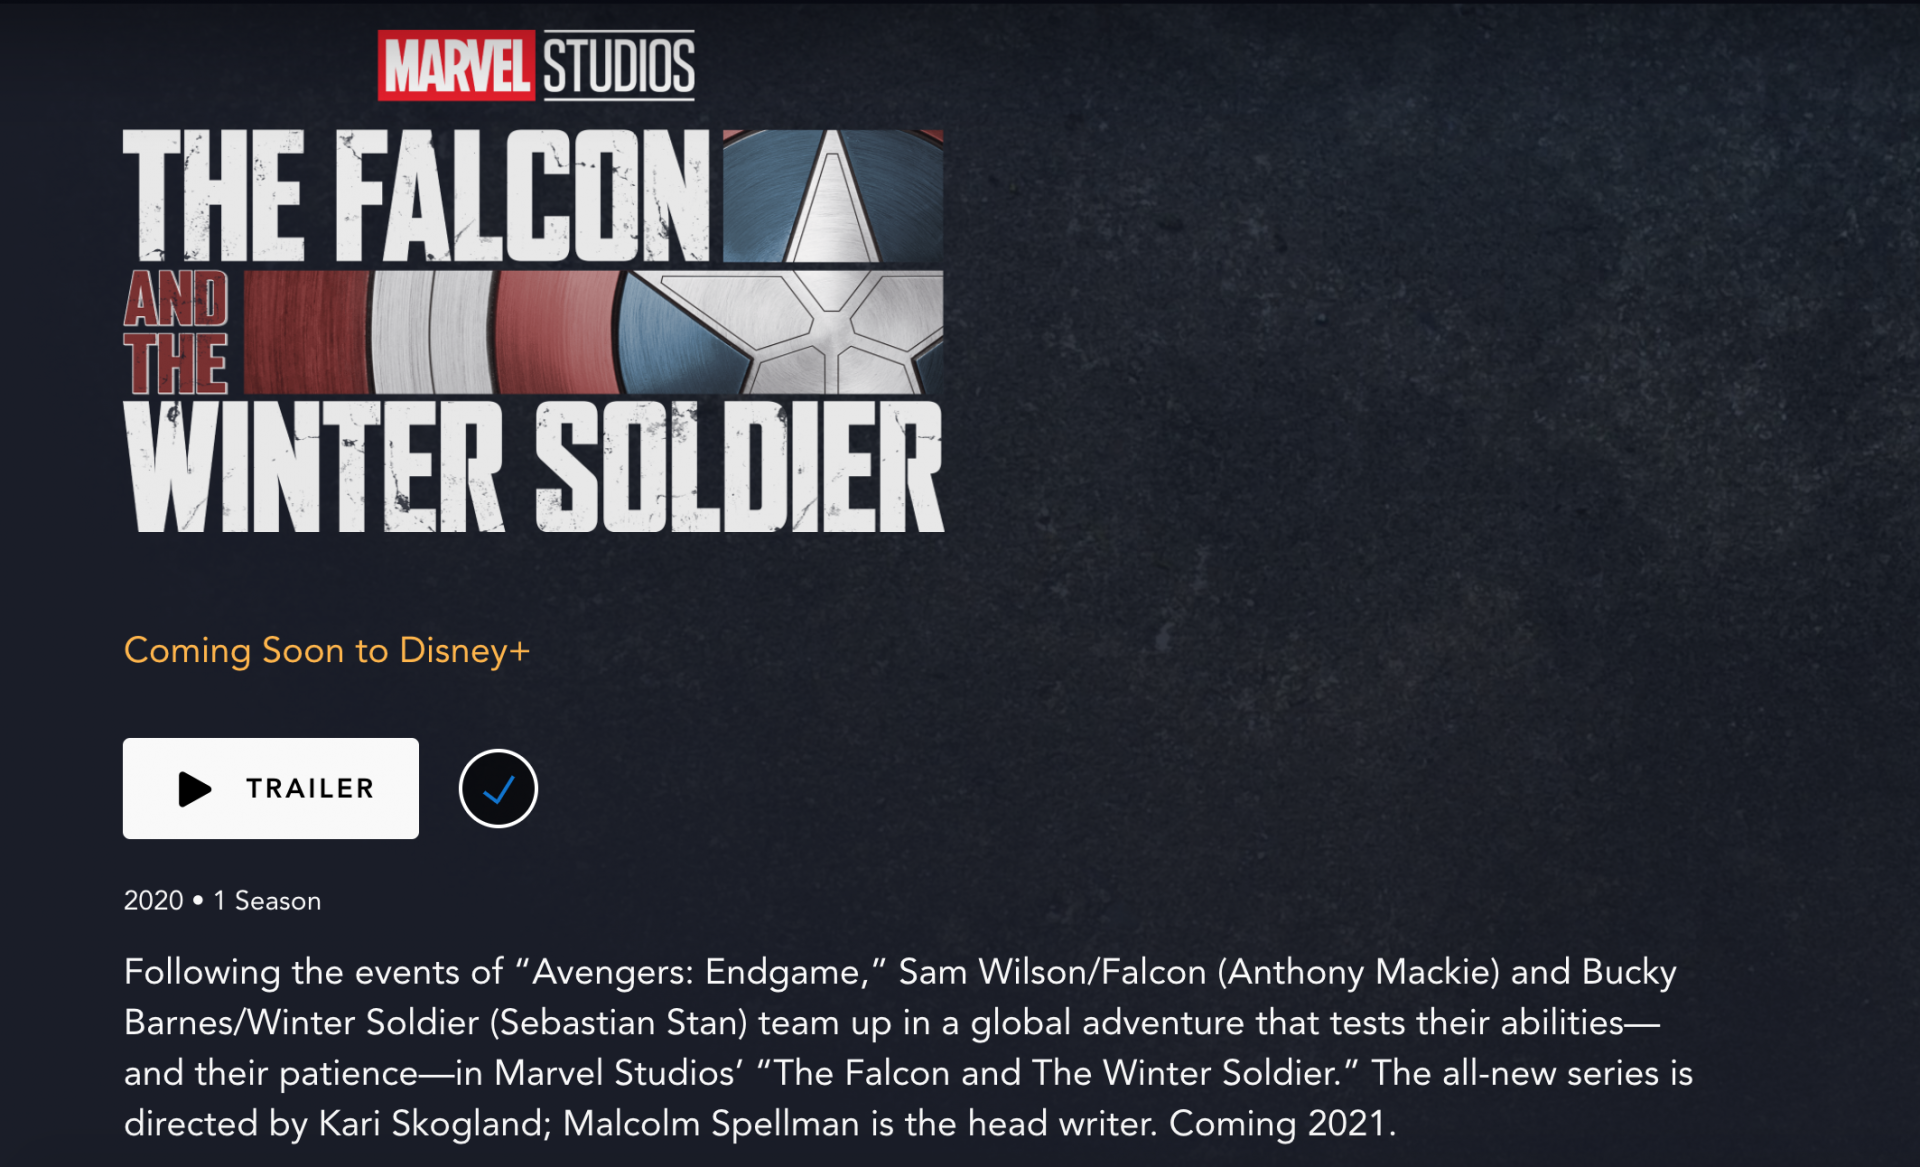 The Falcon and Winter Soldier screen shot